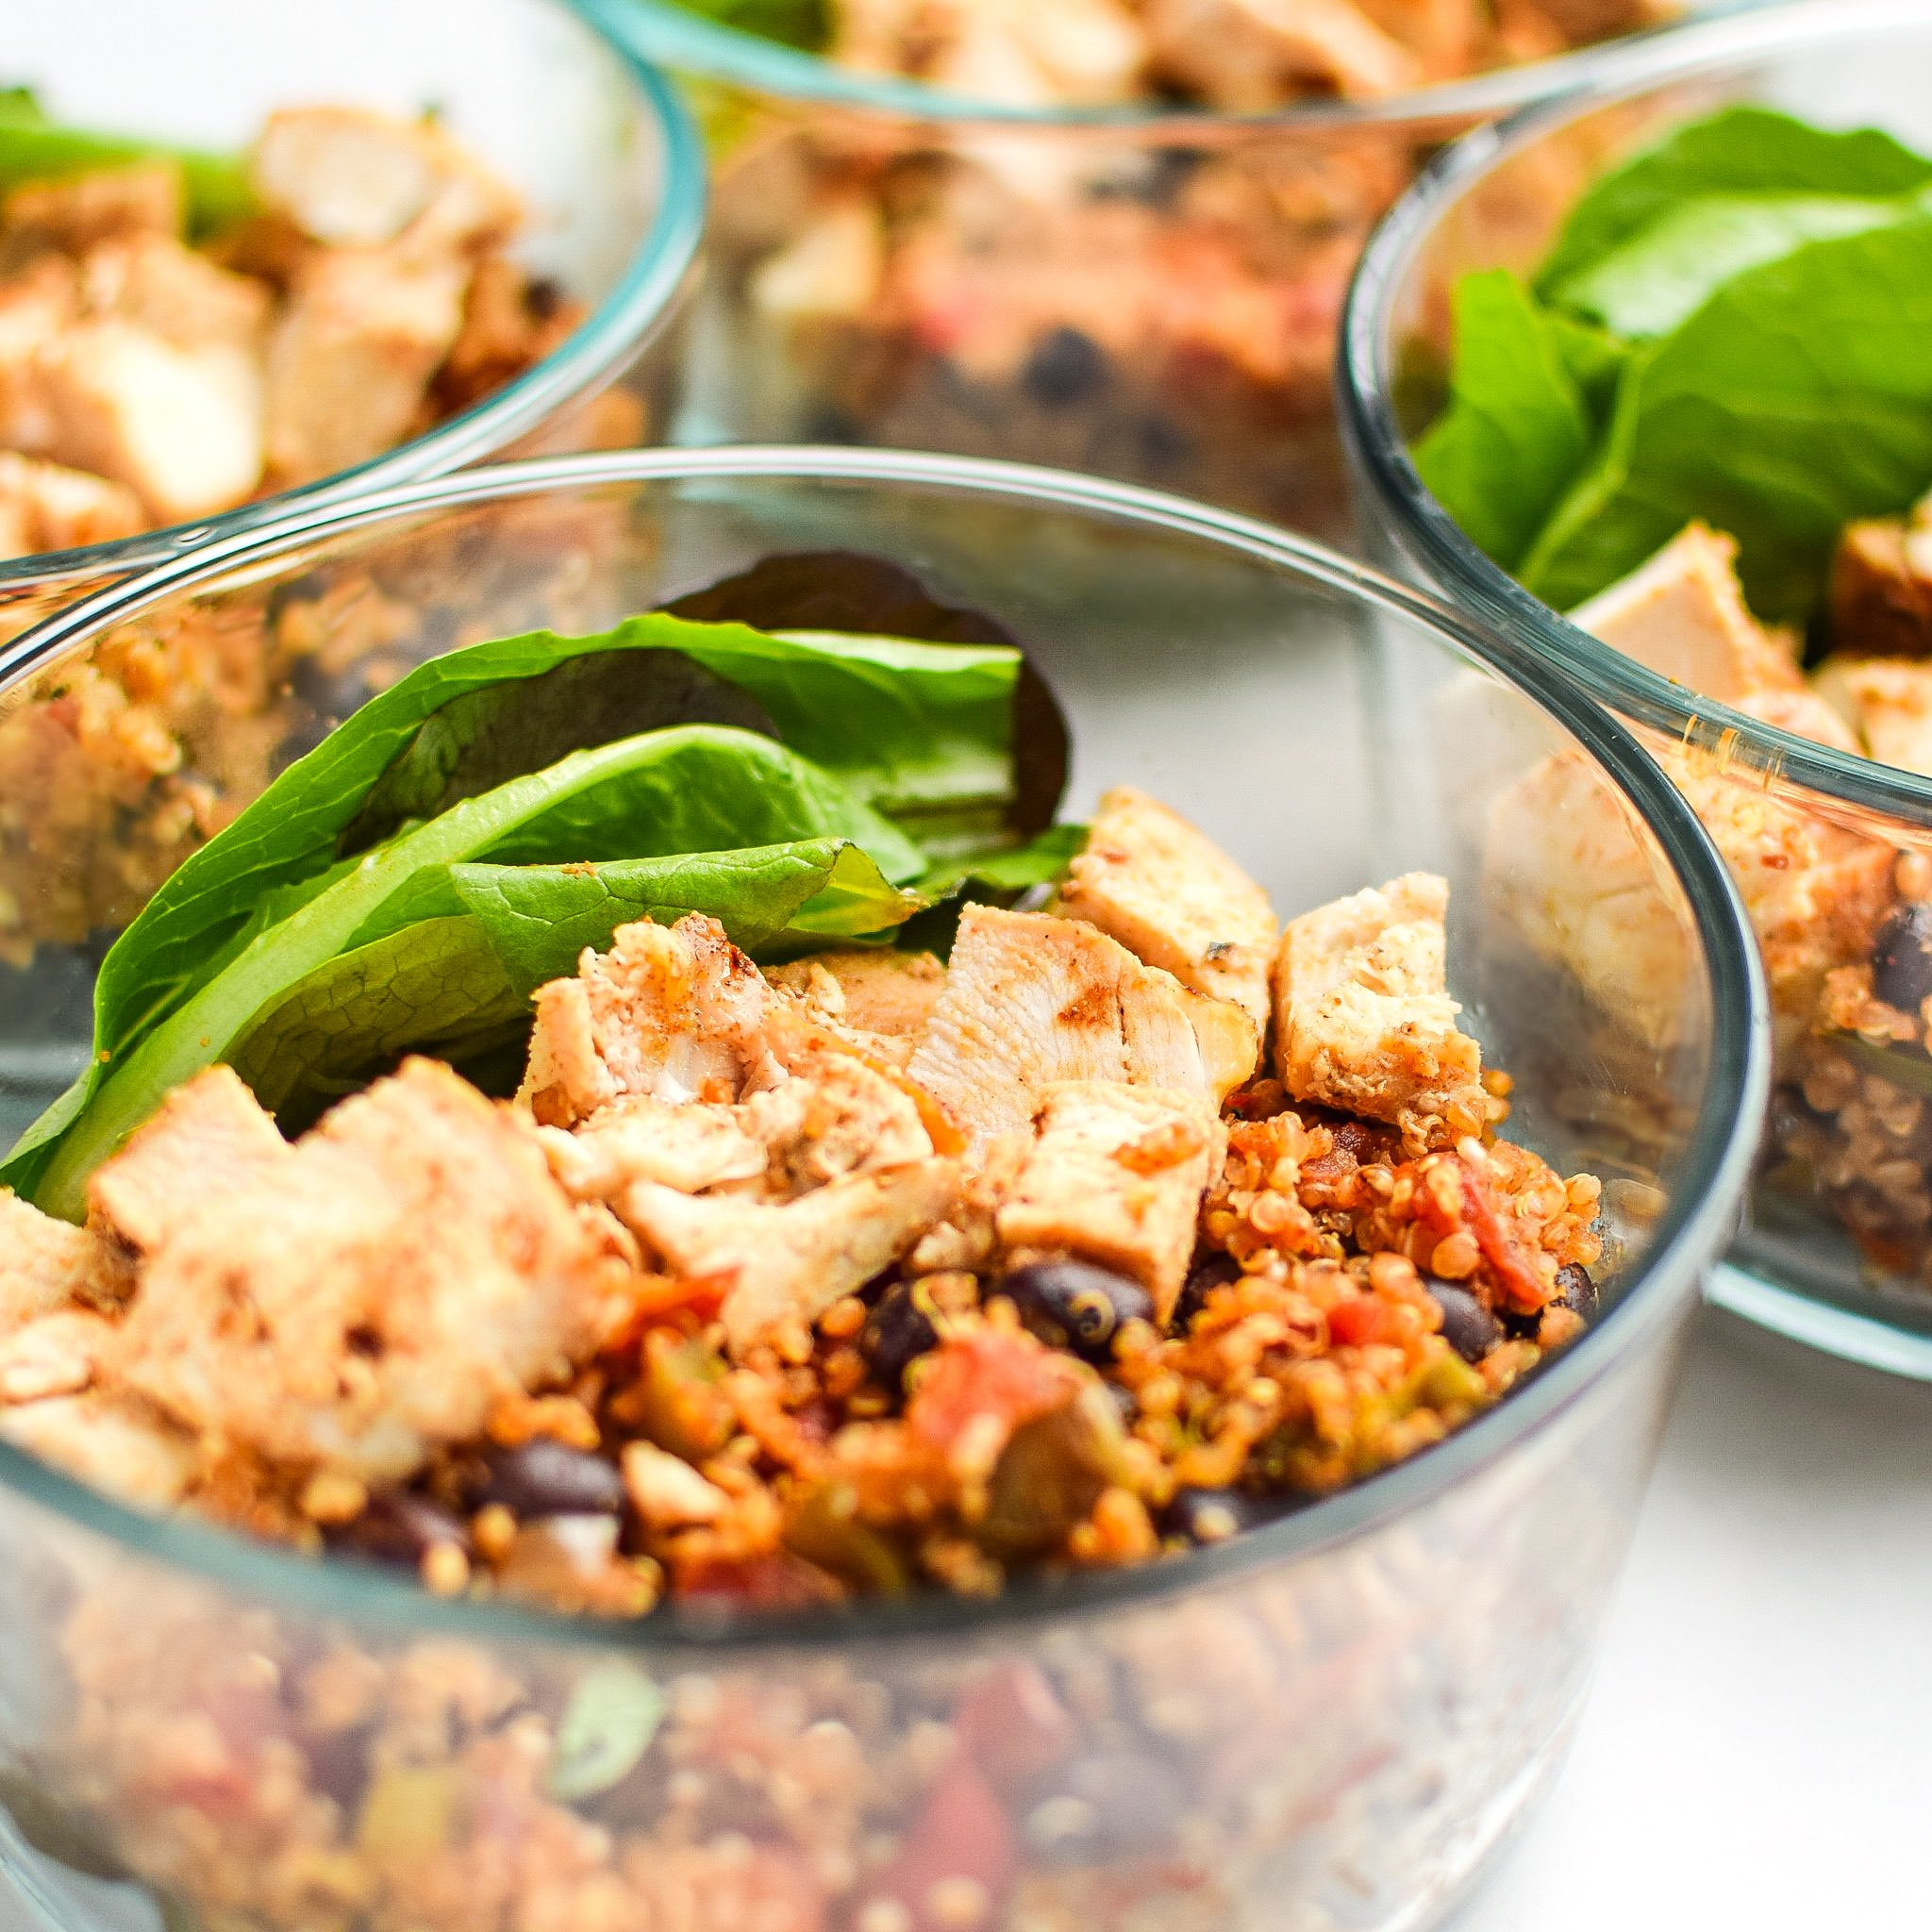 Meal prep lunch with mexican quinoa, chicken breast and hearty green leaves in Pyrex.